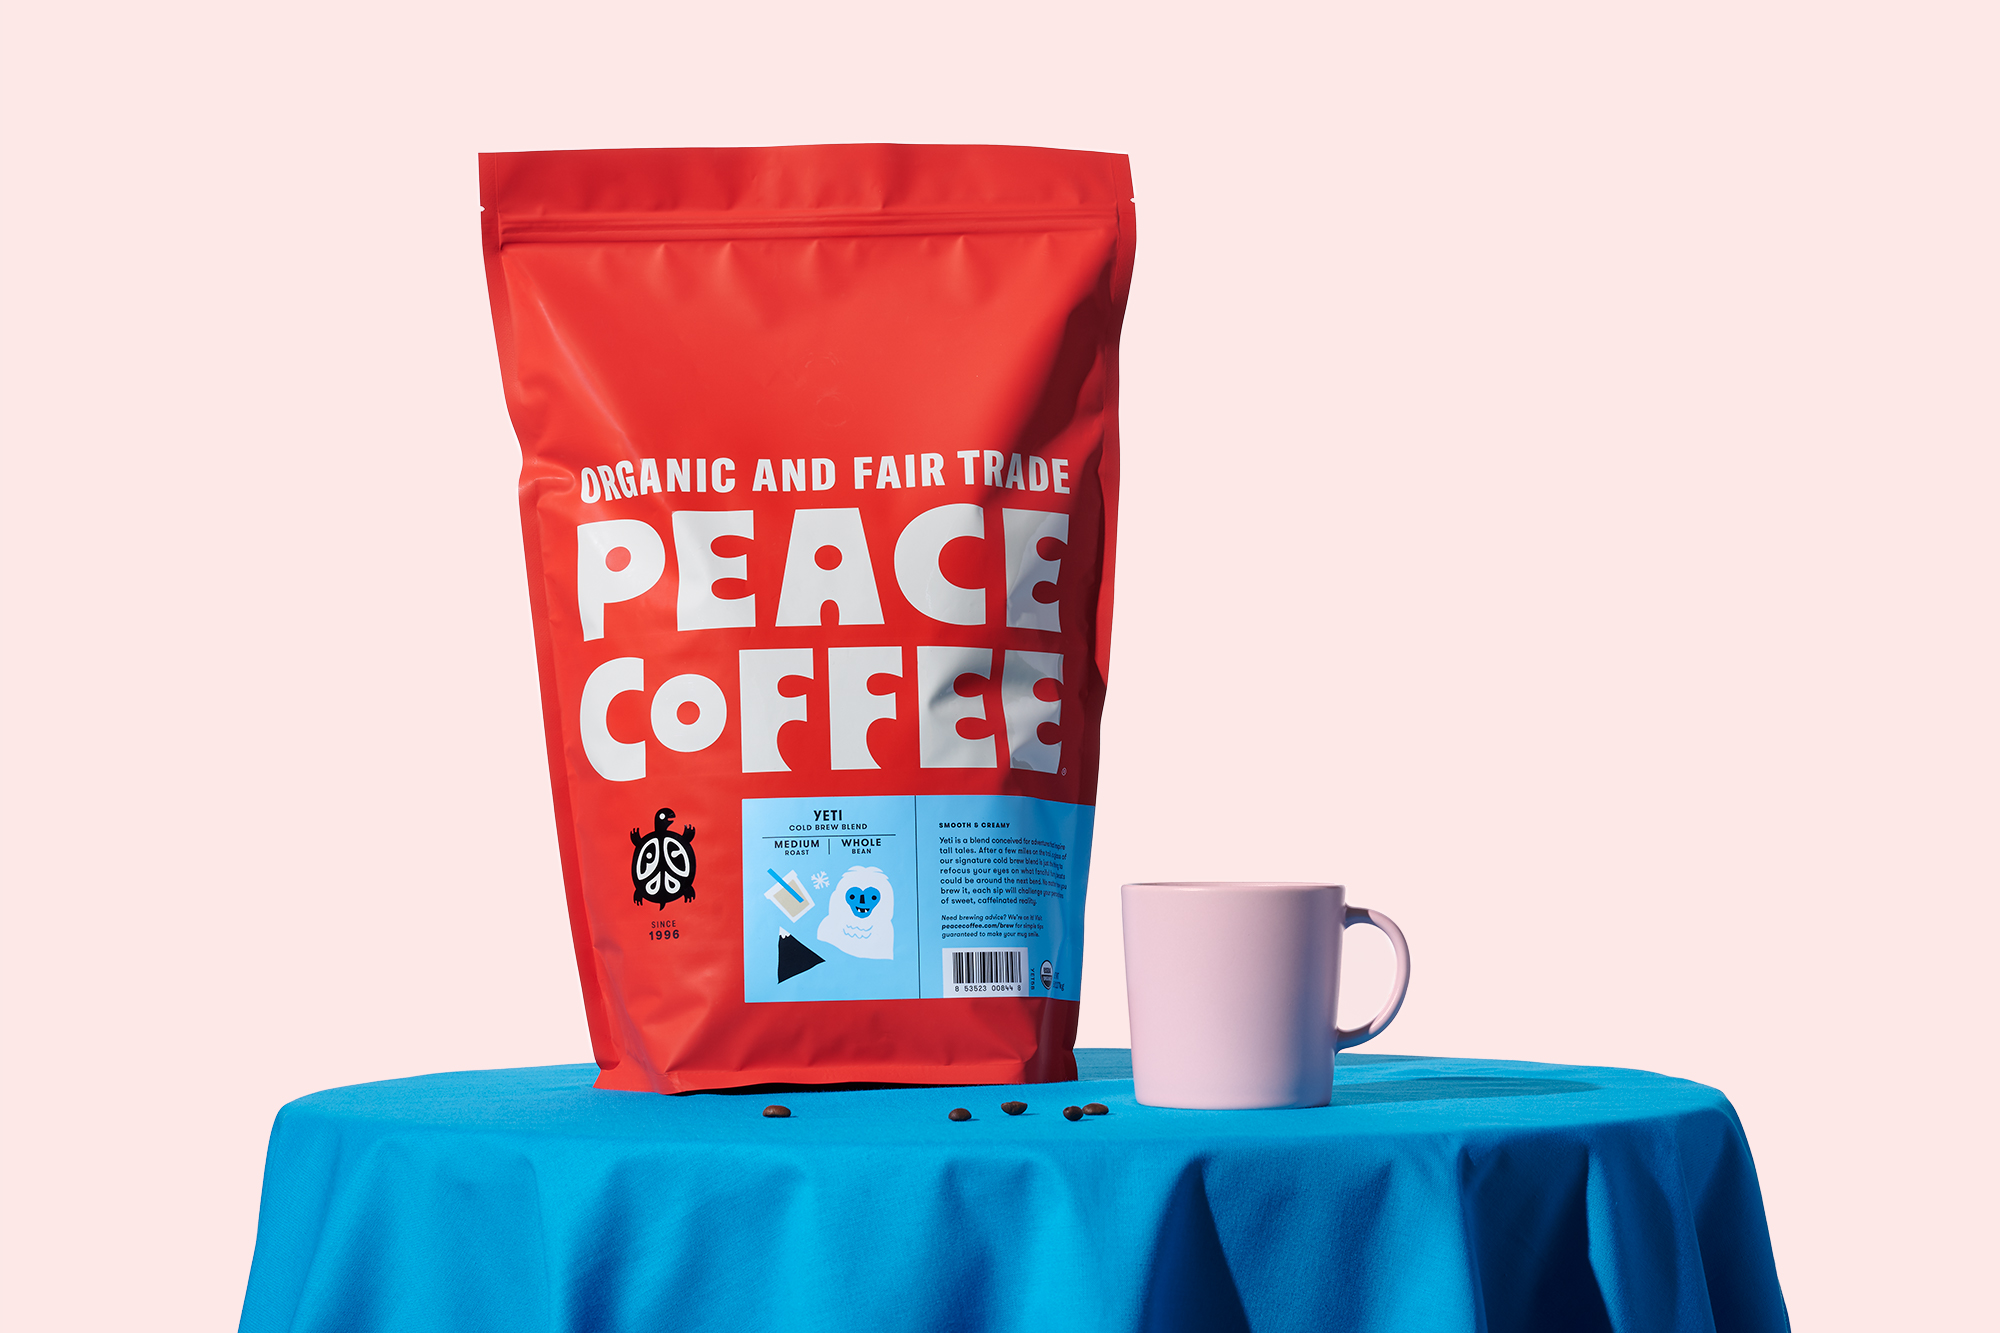 Peace Coffee rebrand and packaging